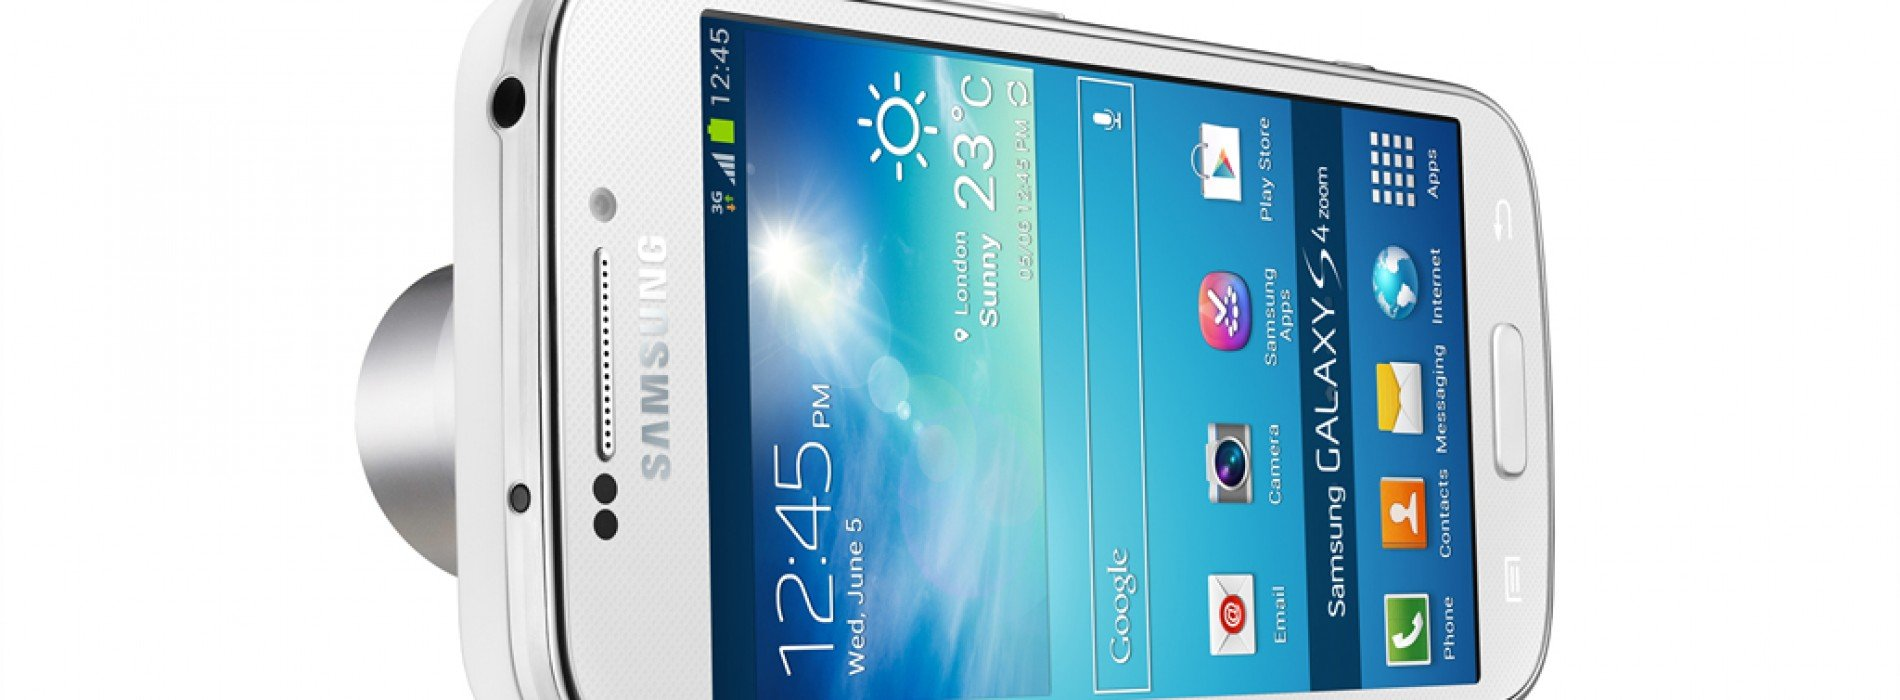 AT&T announces $199 Galaxy S4 Zoom for November 8